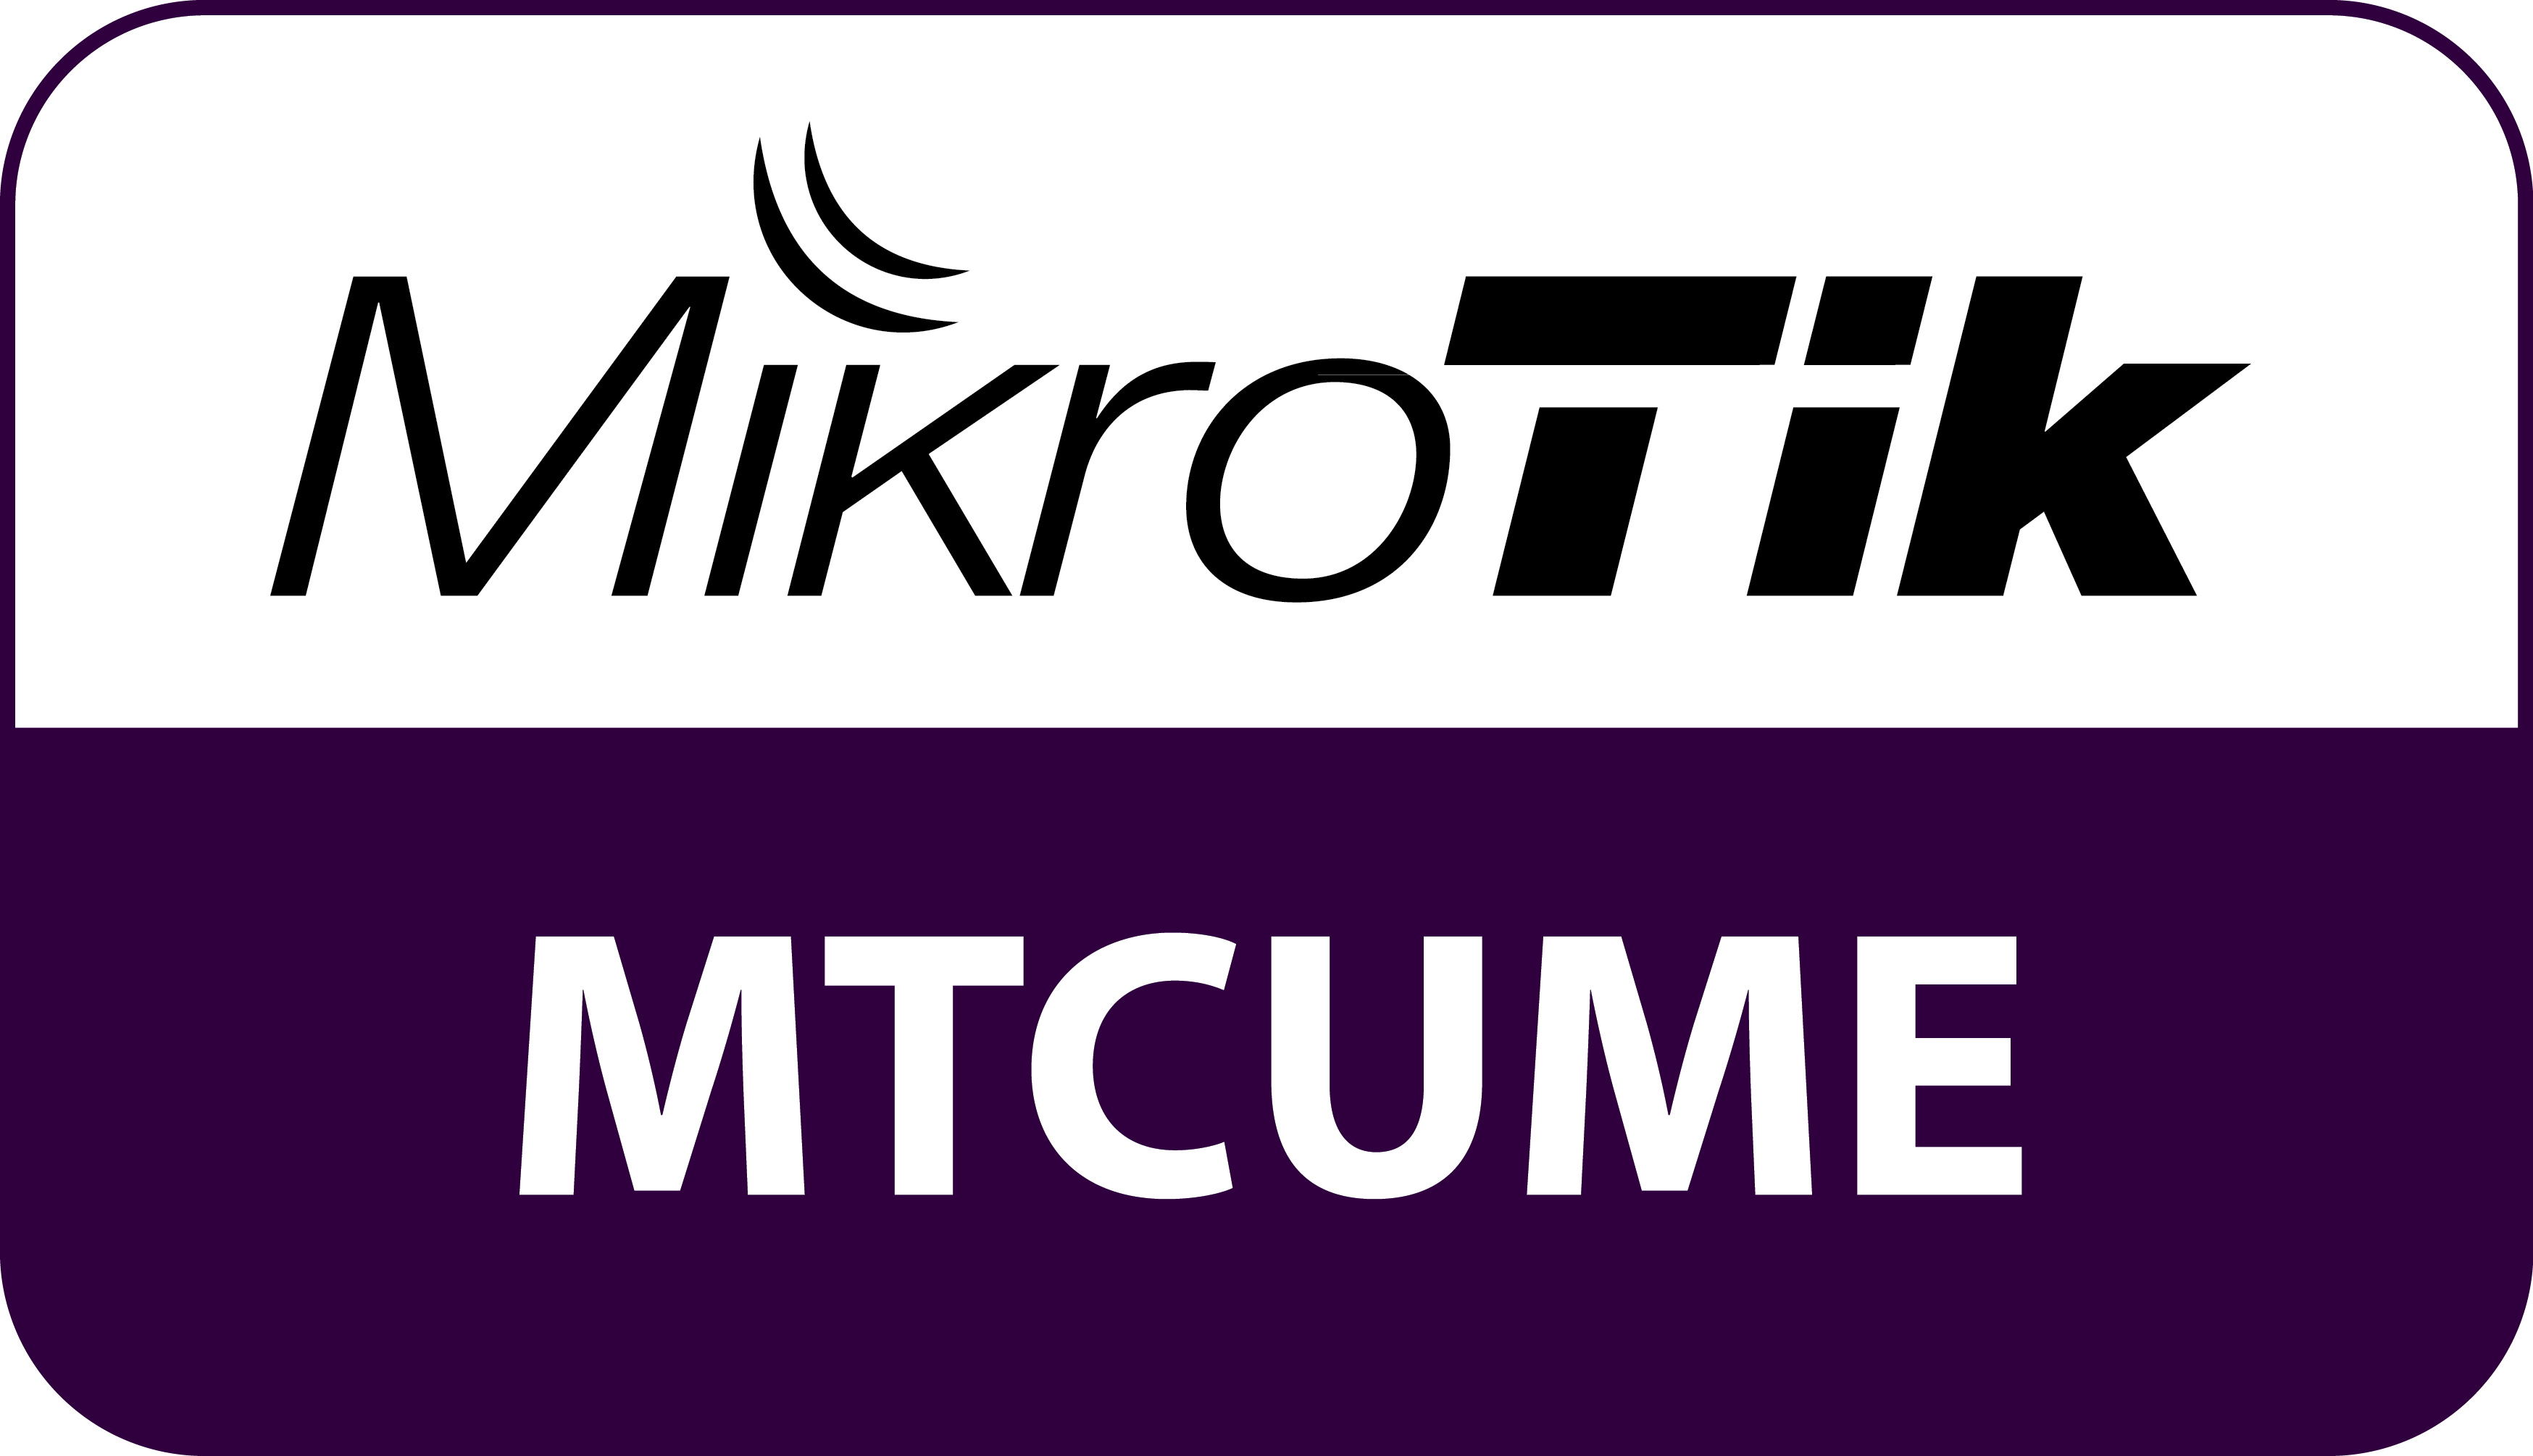 certifikace MTCUME - MikroTik Certified User Management Engineer